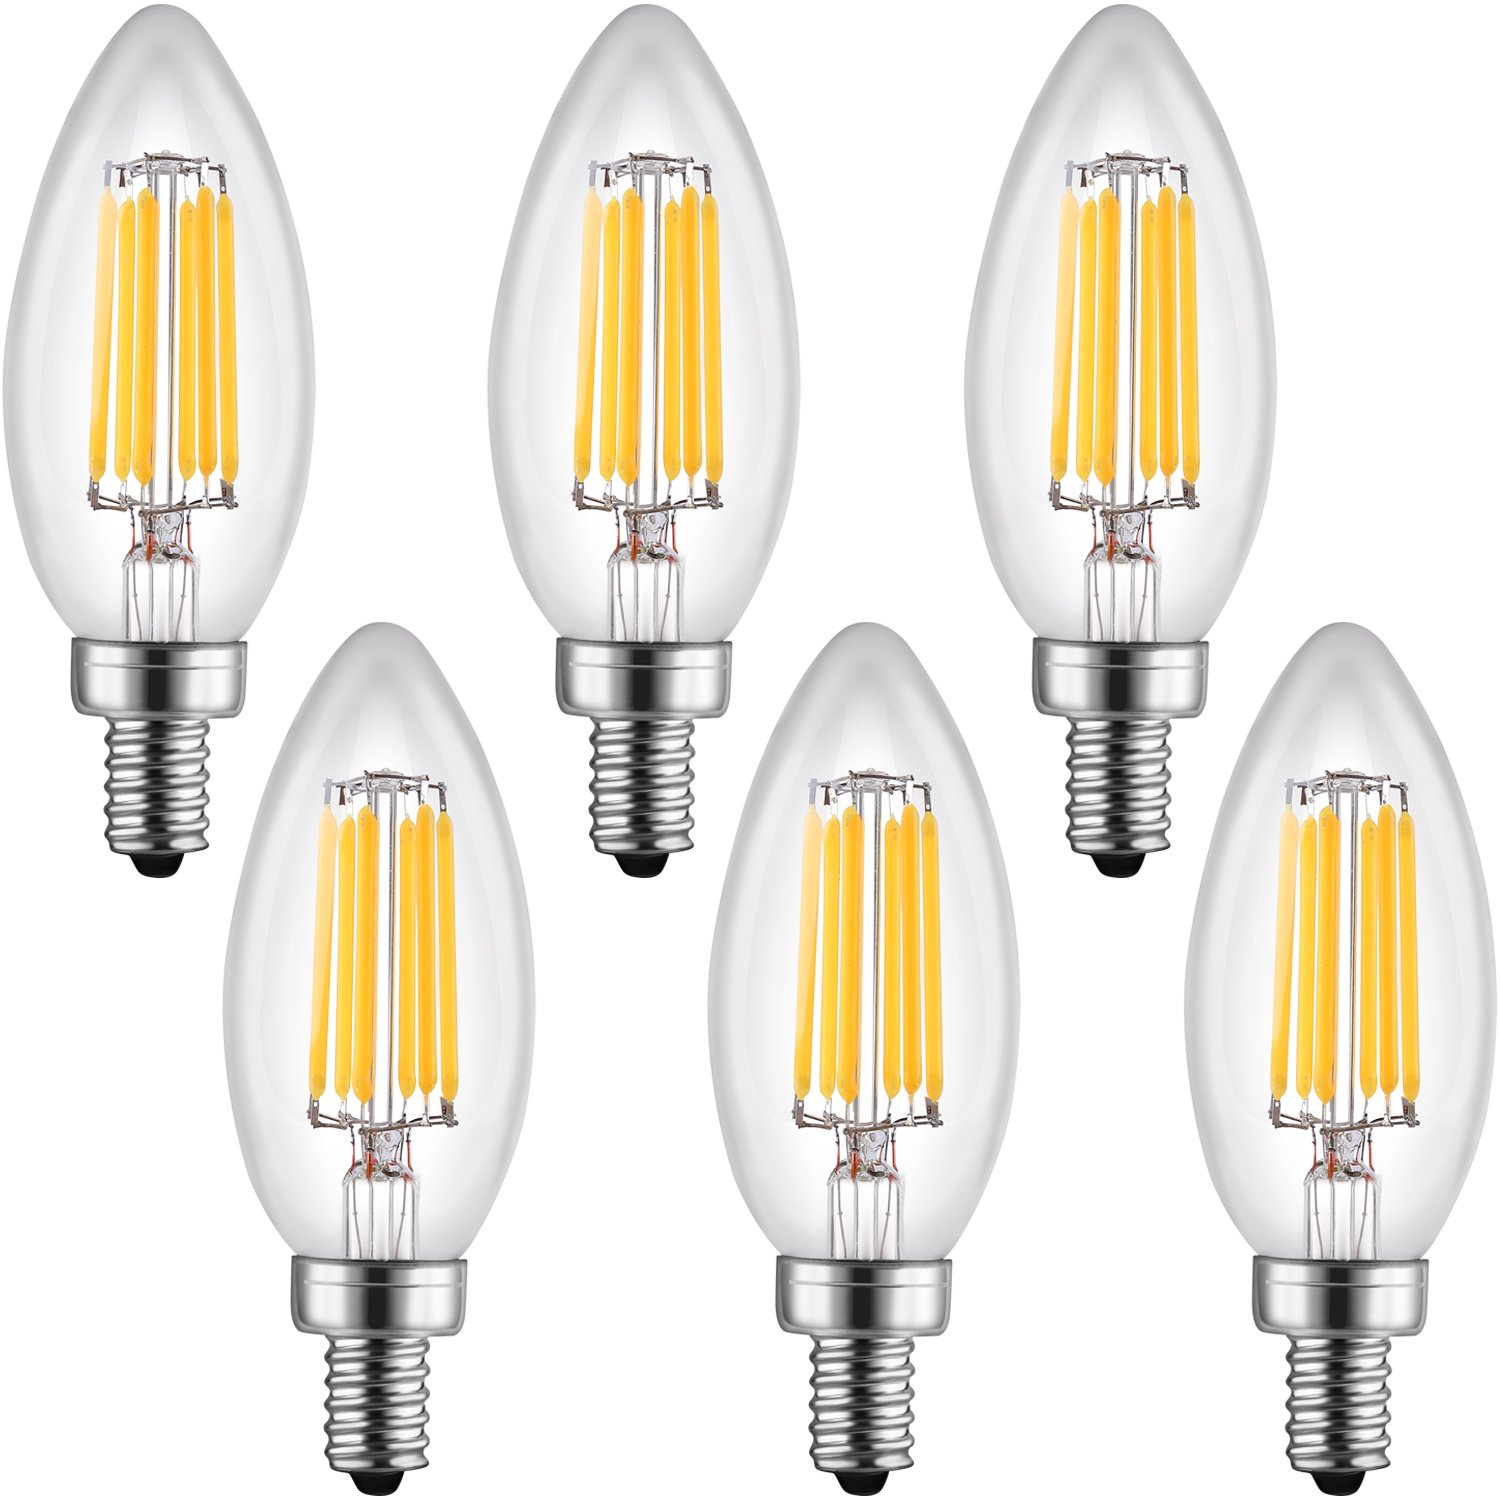 Leto b11 6w led light bulbs candelabra base dimmable ul listed 60w leto b11 6w led light bulbs candelabra base dimmable ul listed 60w equivalent light bulbs equivalent led chandelier bulb e12 candelabra base arubaitofo Images